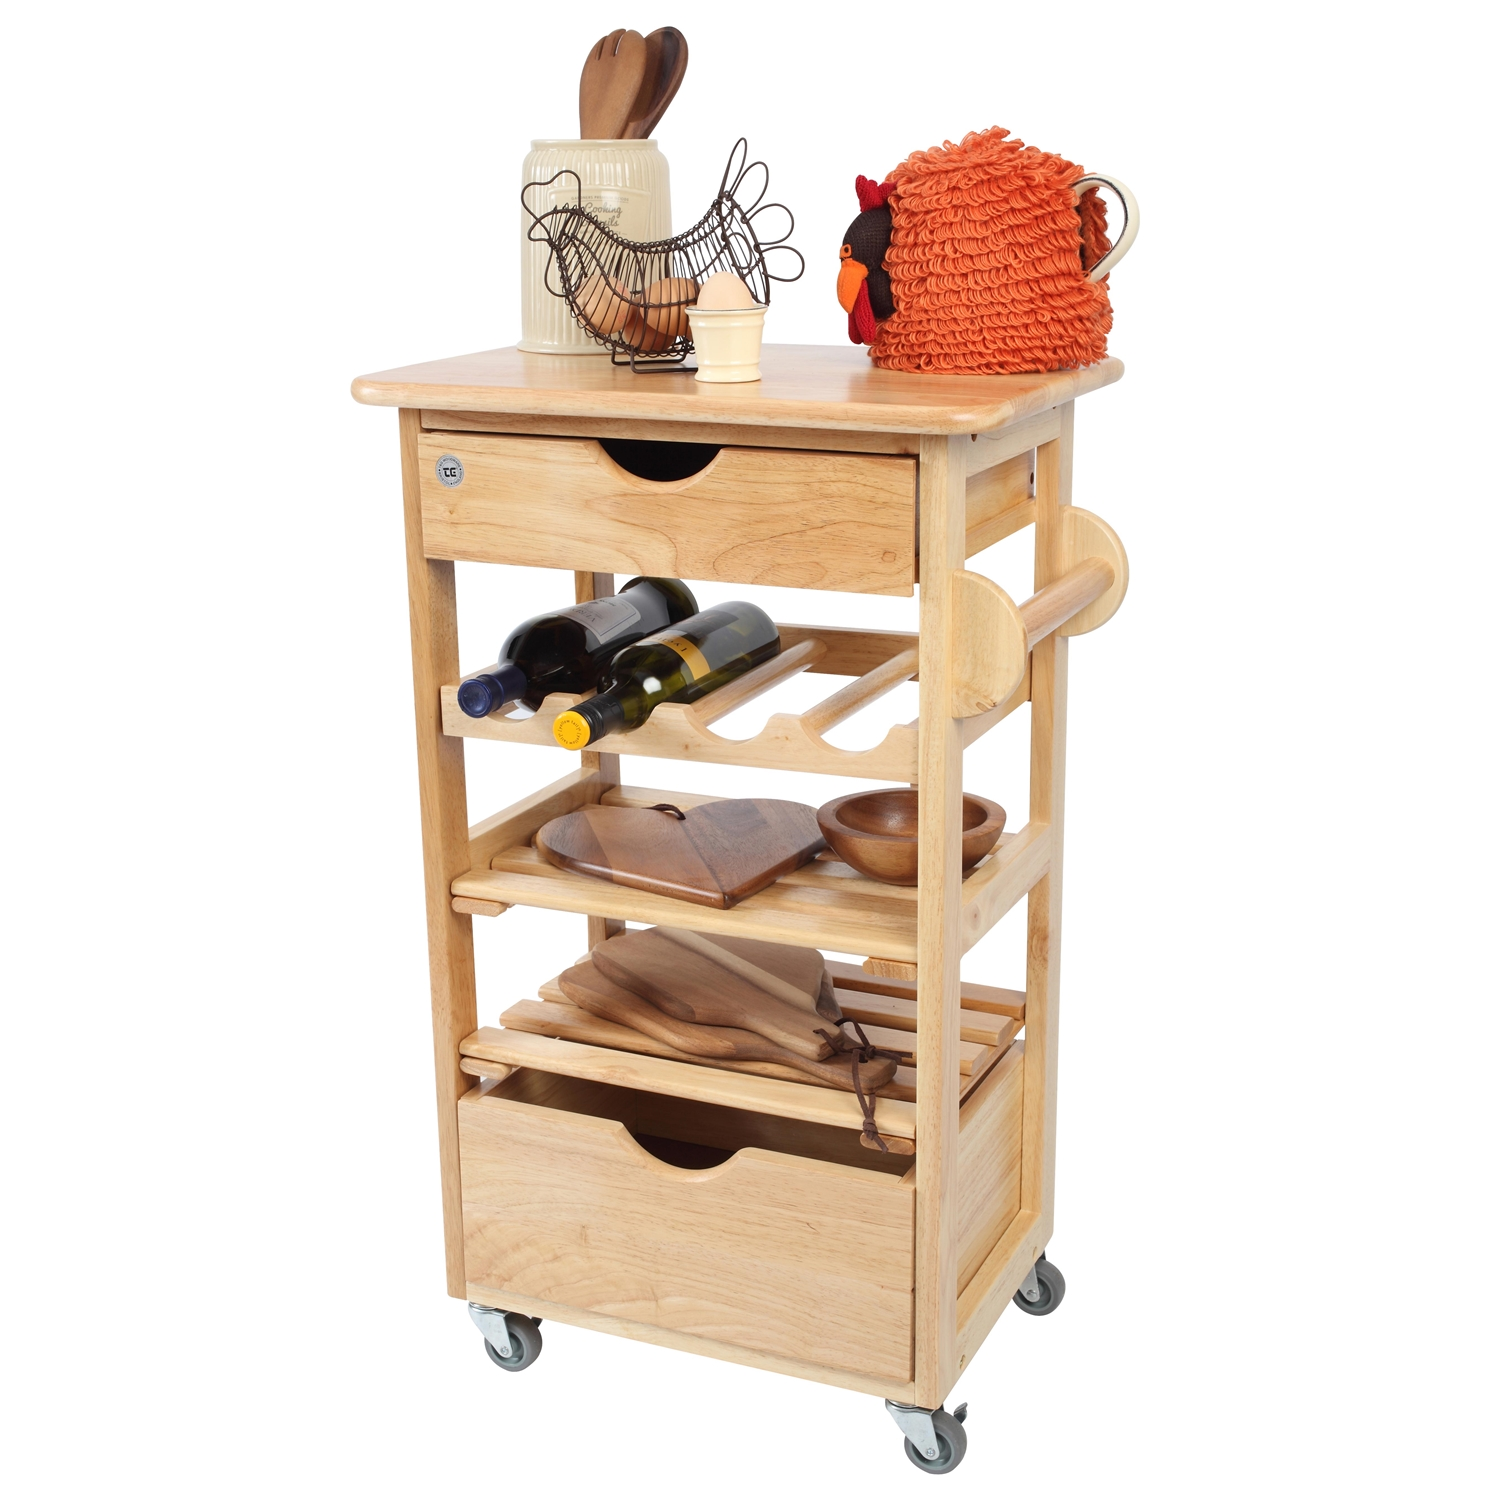 Image of T&G Woodware Kitchen Compact Trolley Built